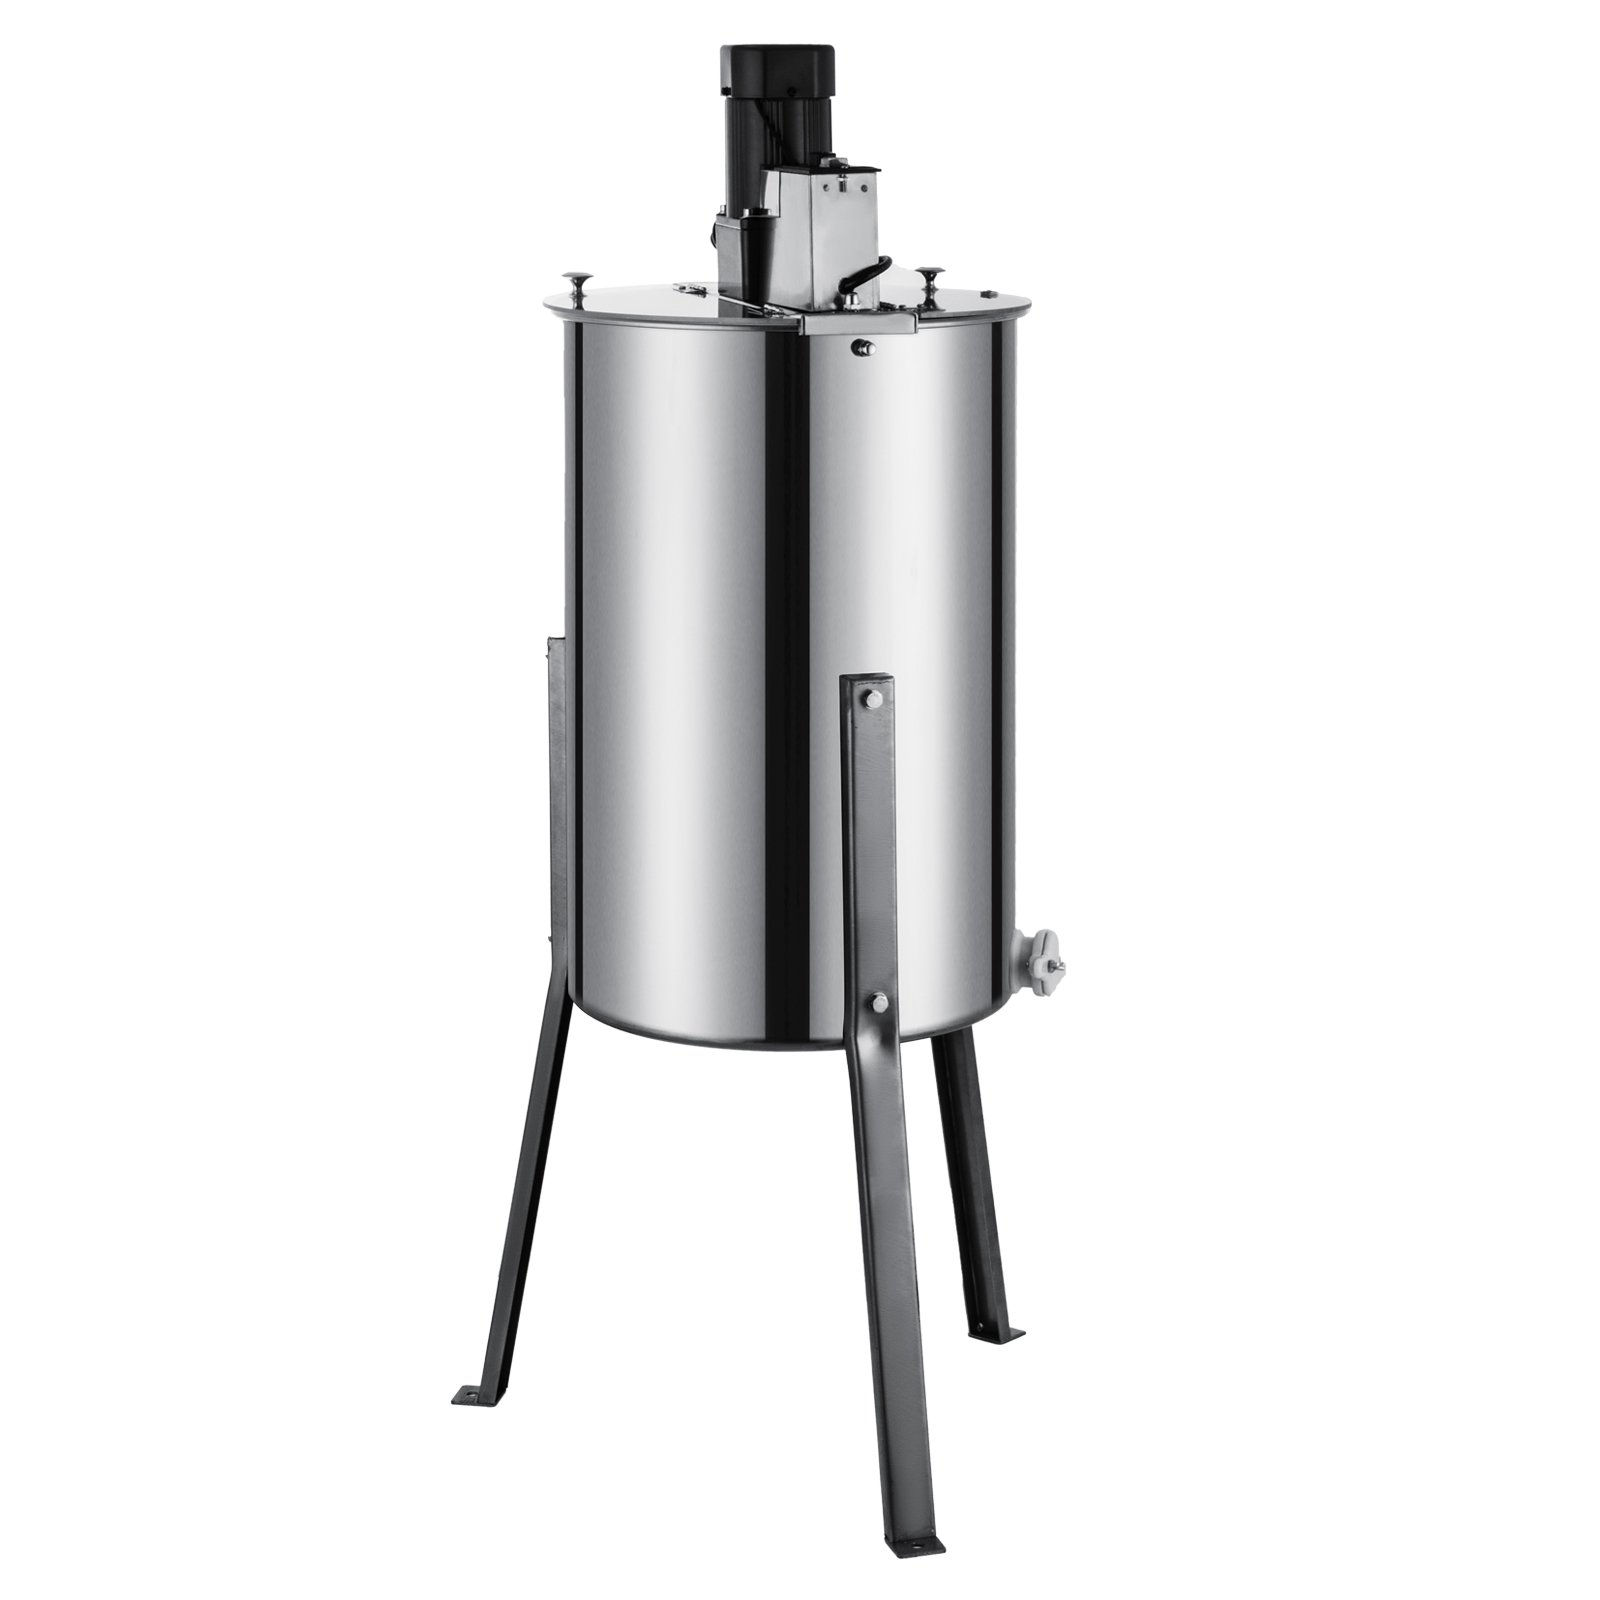 2 Frame, Stainless Steel, Electric Honey  Extractor,